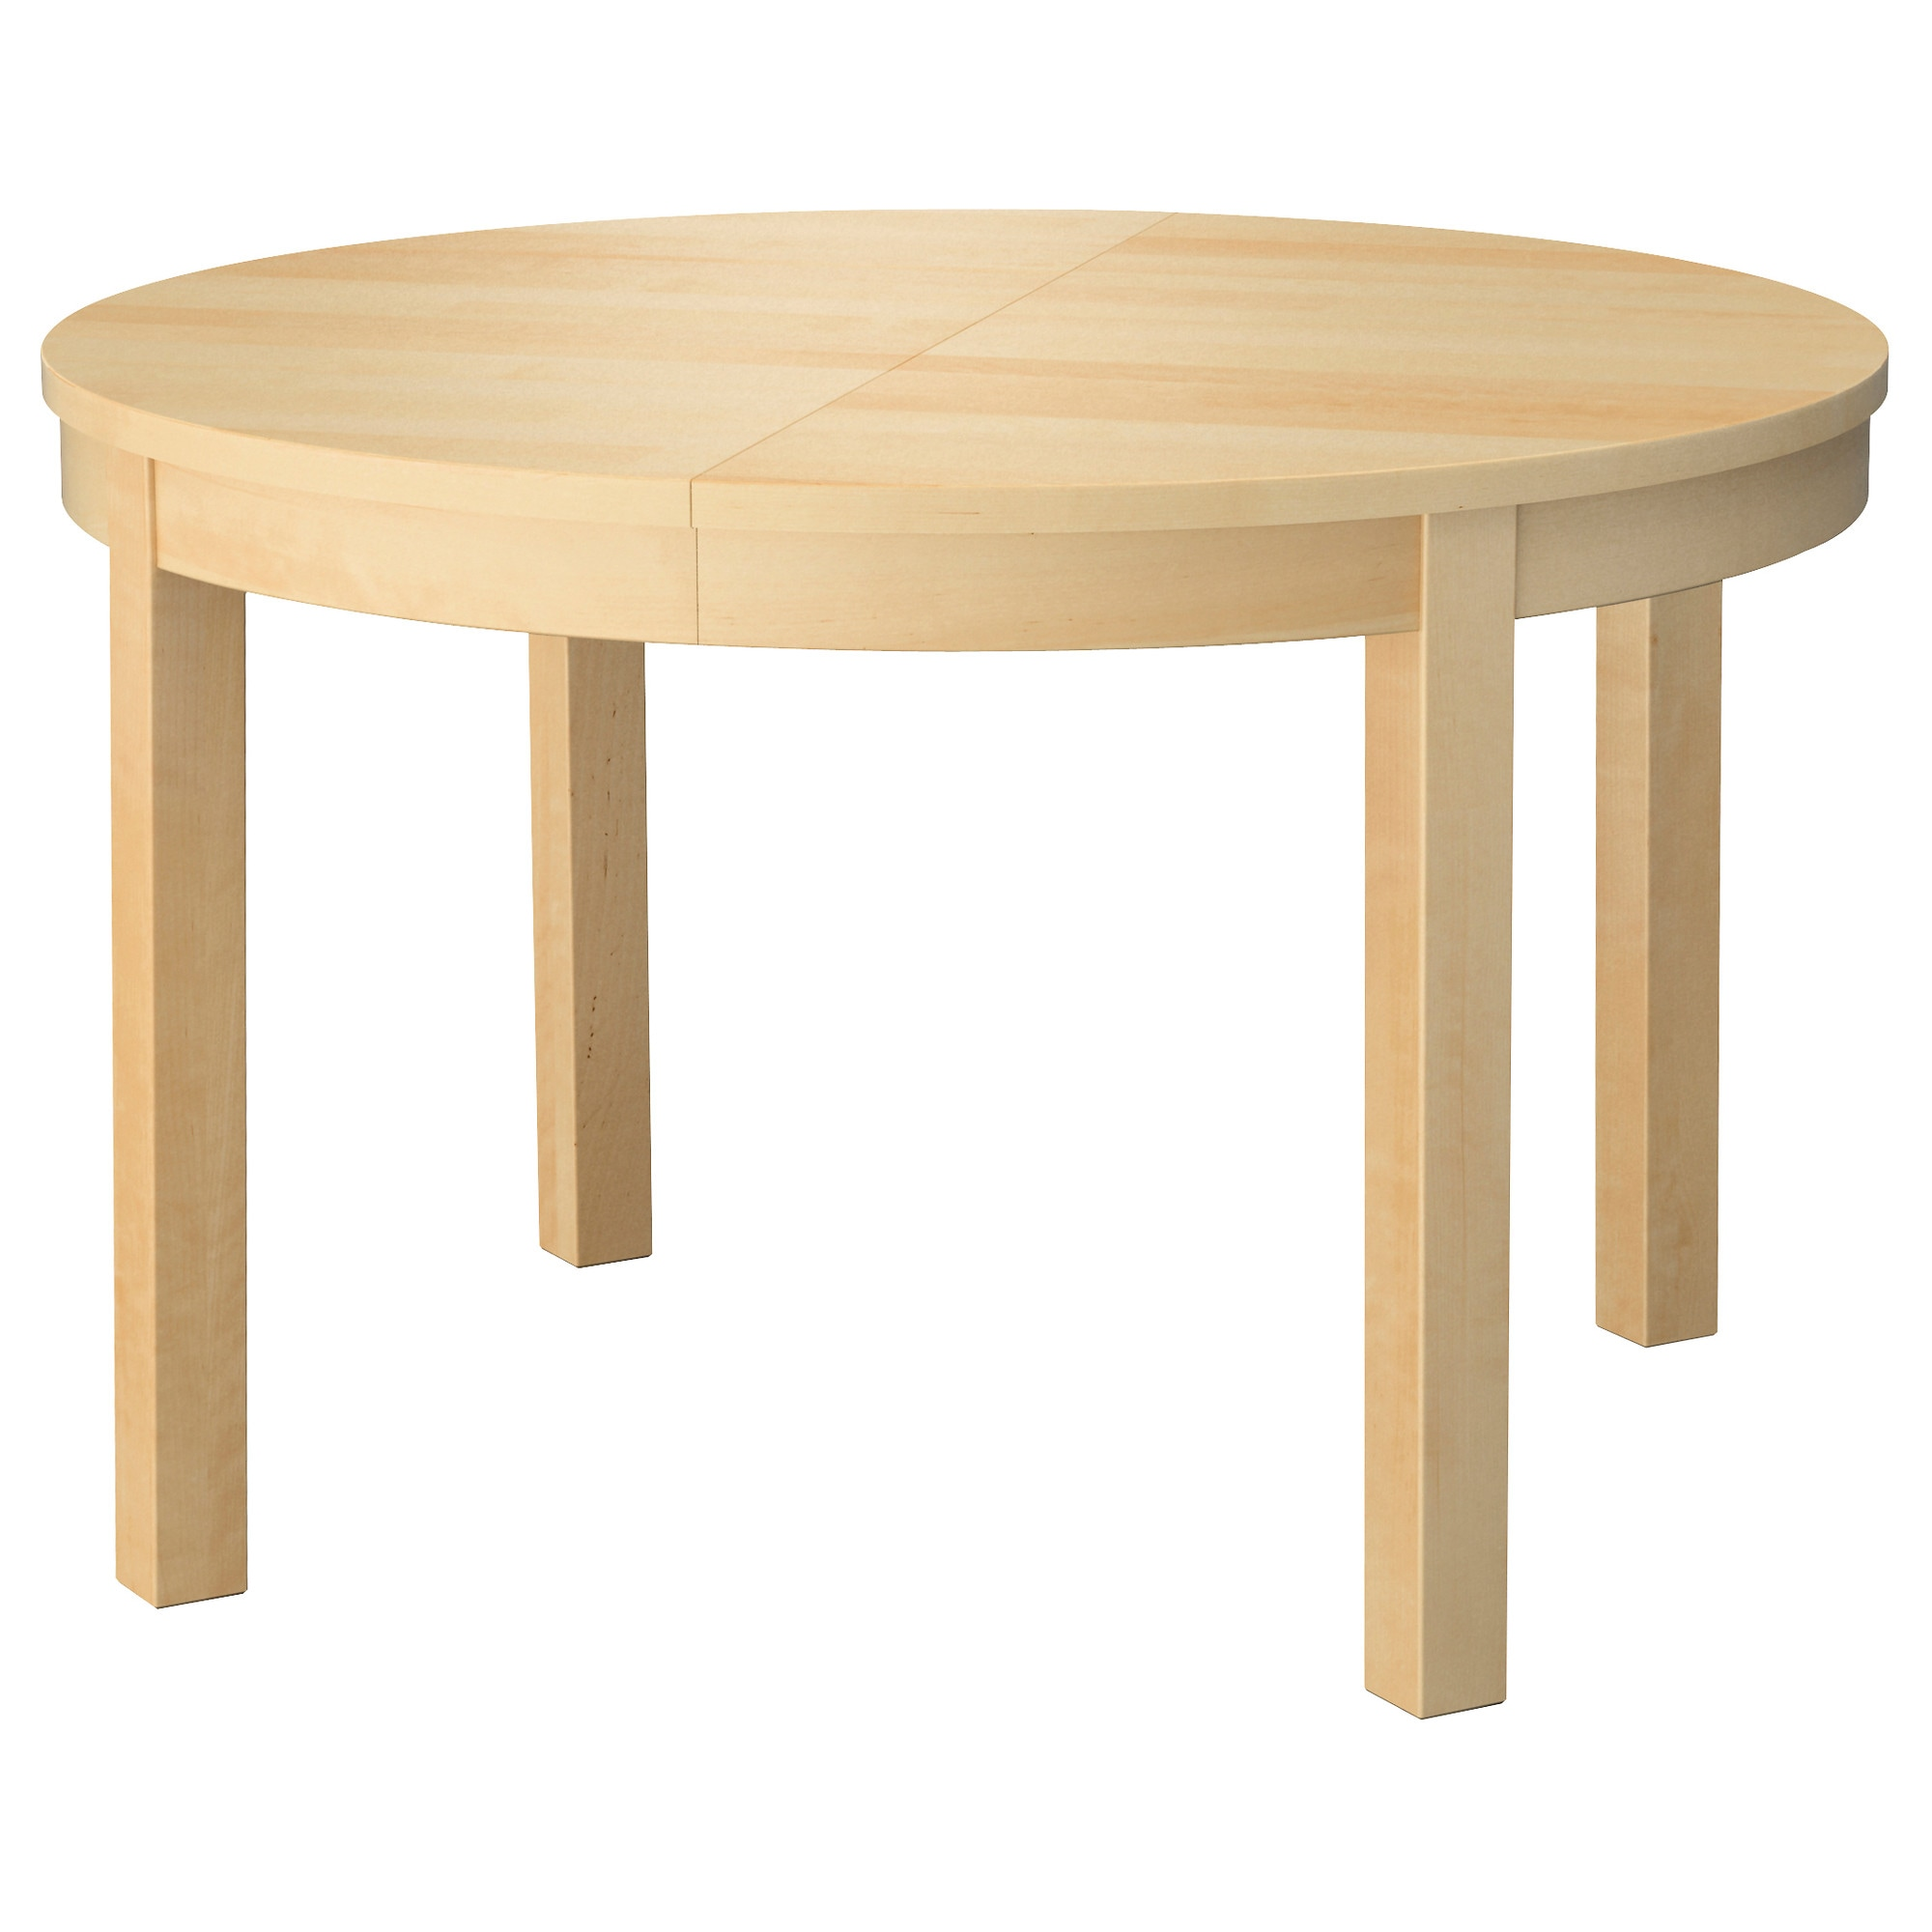 Table Ronde Ikea Of Table Ronde Ikea